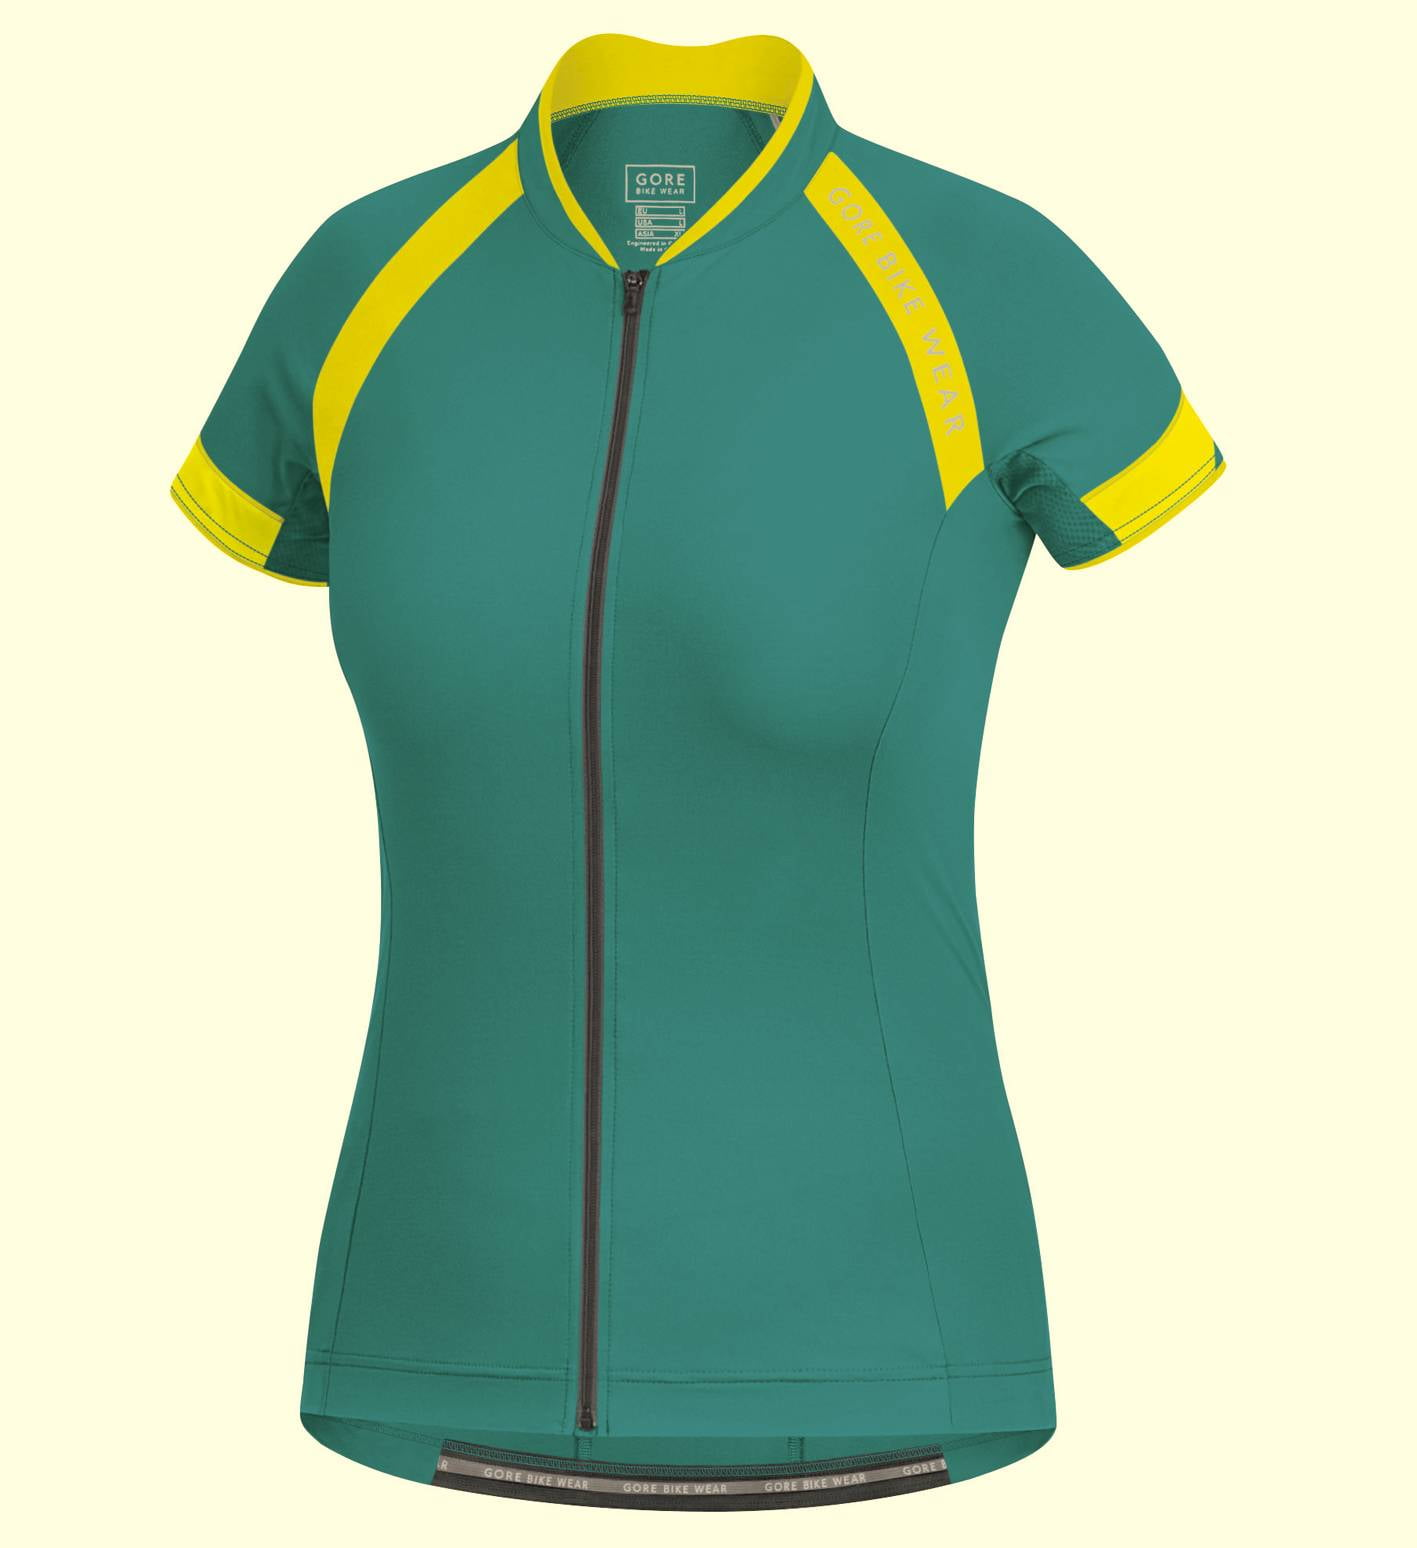 Maglia GORE BIKE WEAR Power